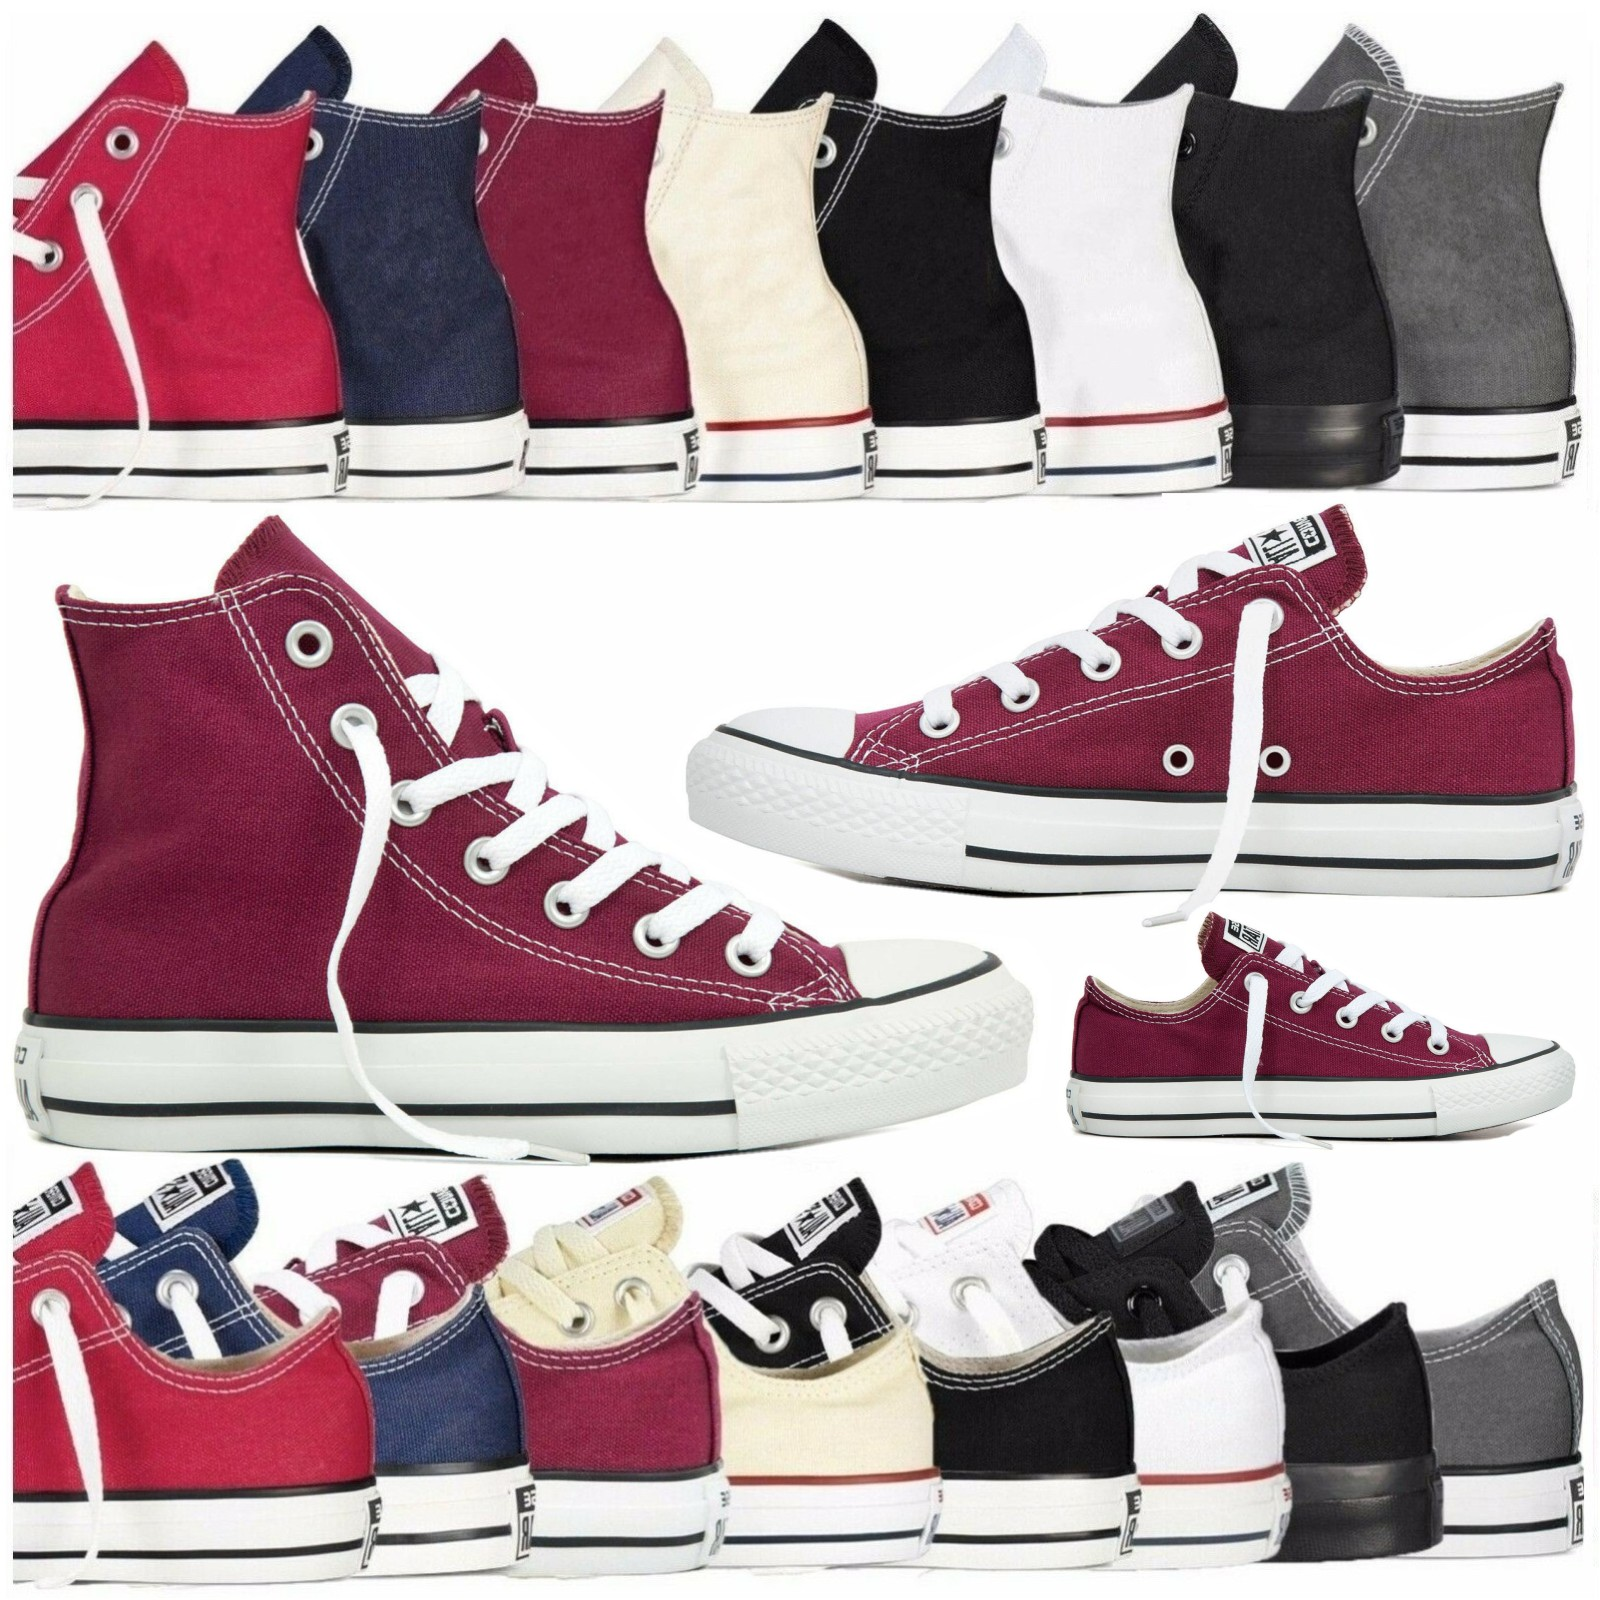 Unisex Women Men Fashion Authentic Classic Allstar Designer Chuck-Taylor Low High Top Canvas Vulcanize Shoes Athletic Sneakers